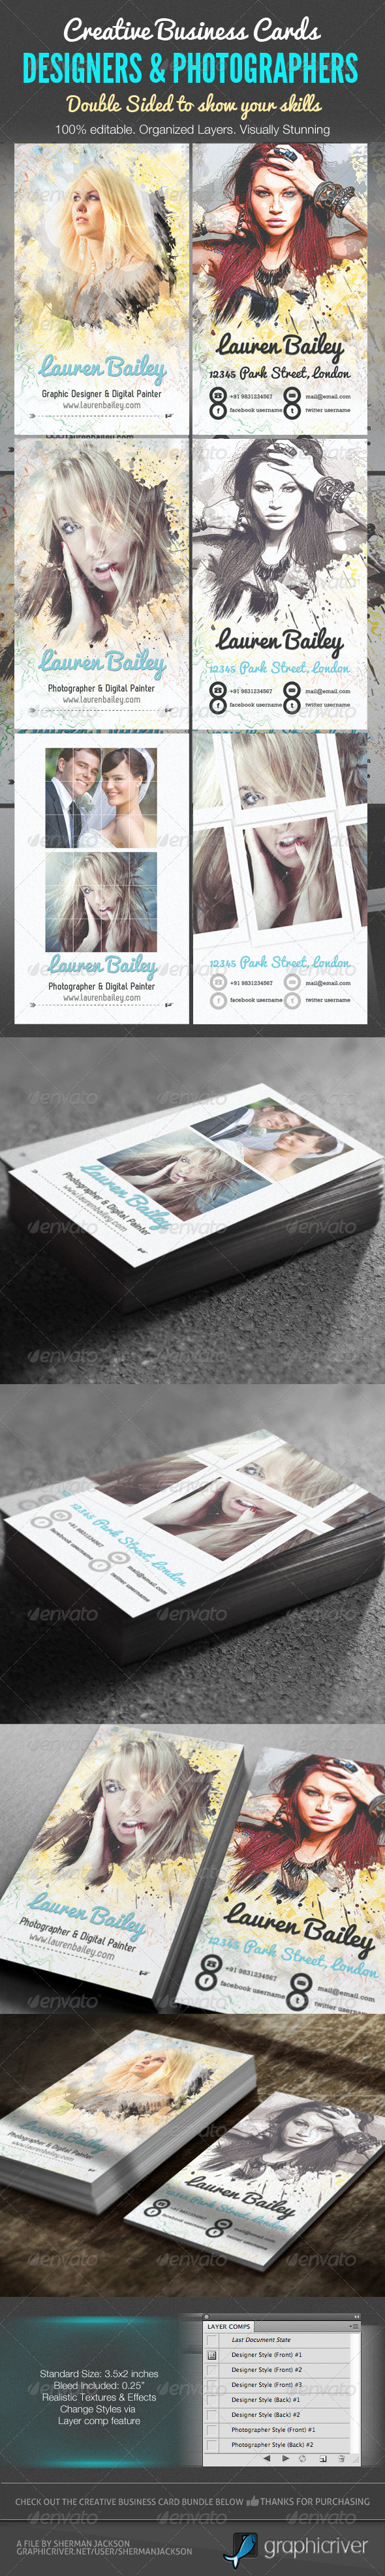 Creative Business Cards - Designer &Photographer - Creative Business Cards